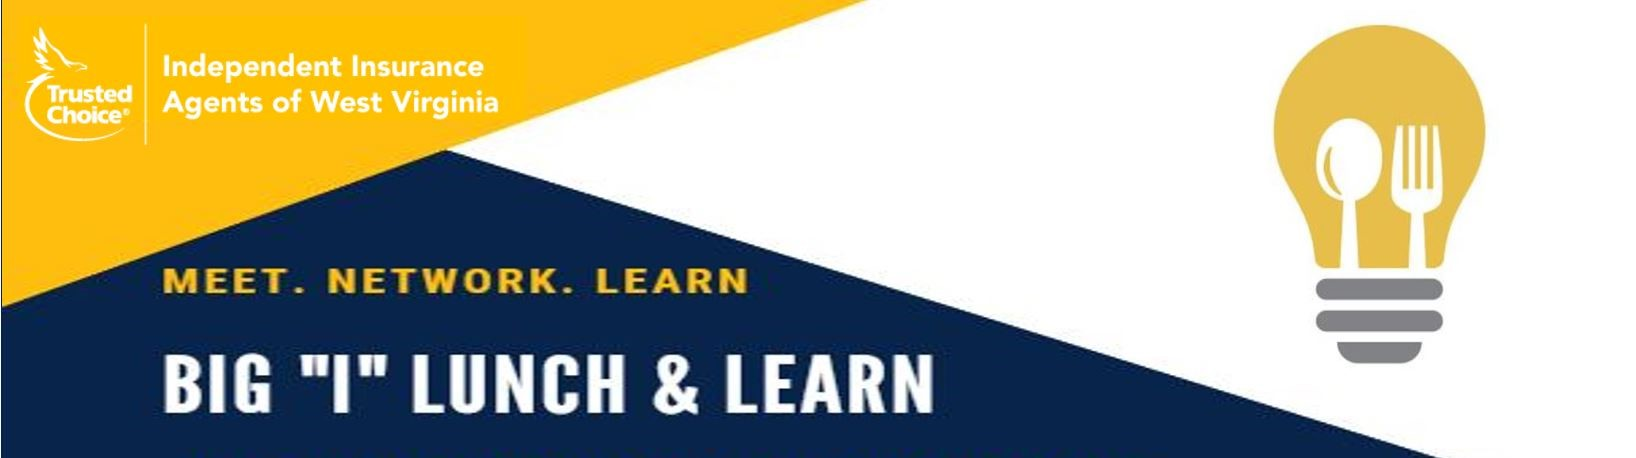 Lunch and Learn Website Banner.JPG